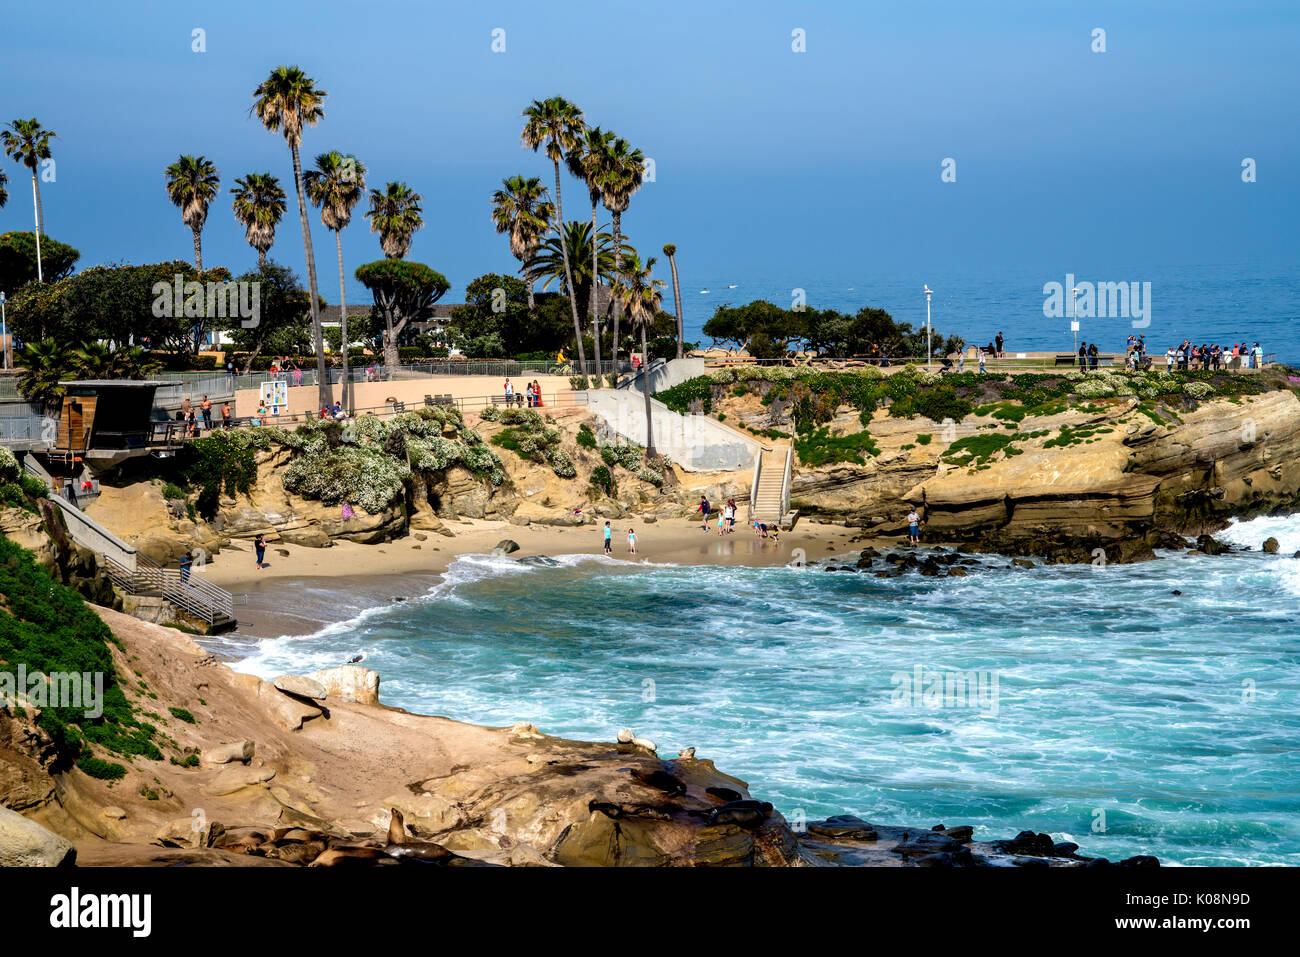 La Jolla California High Resolution Stock Photography And Images Alamy